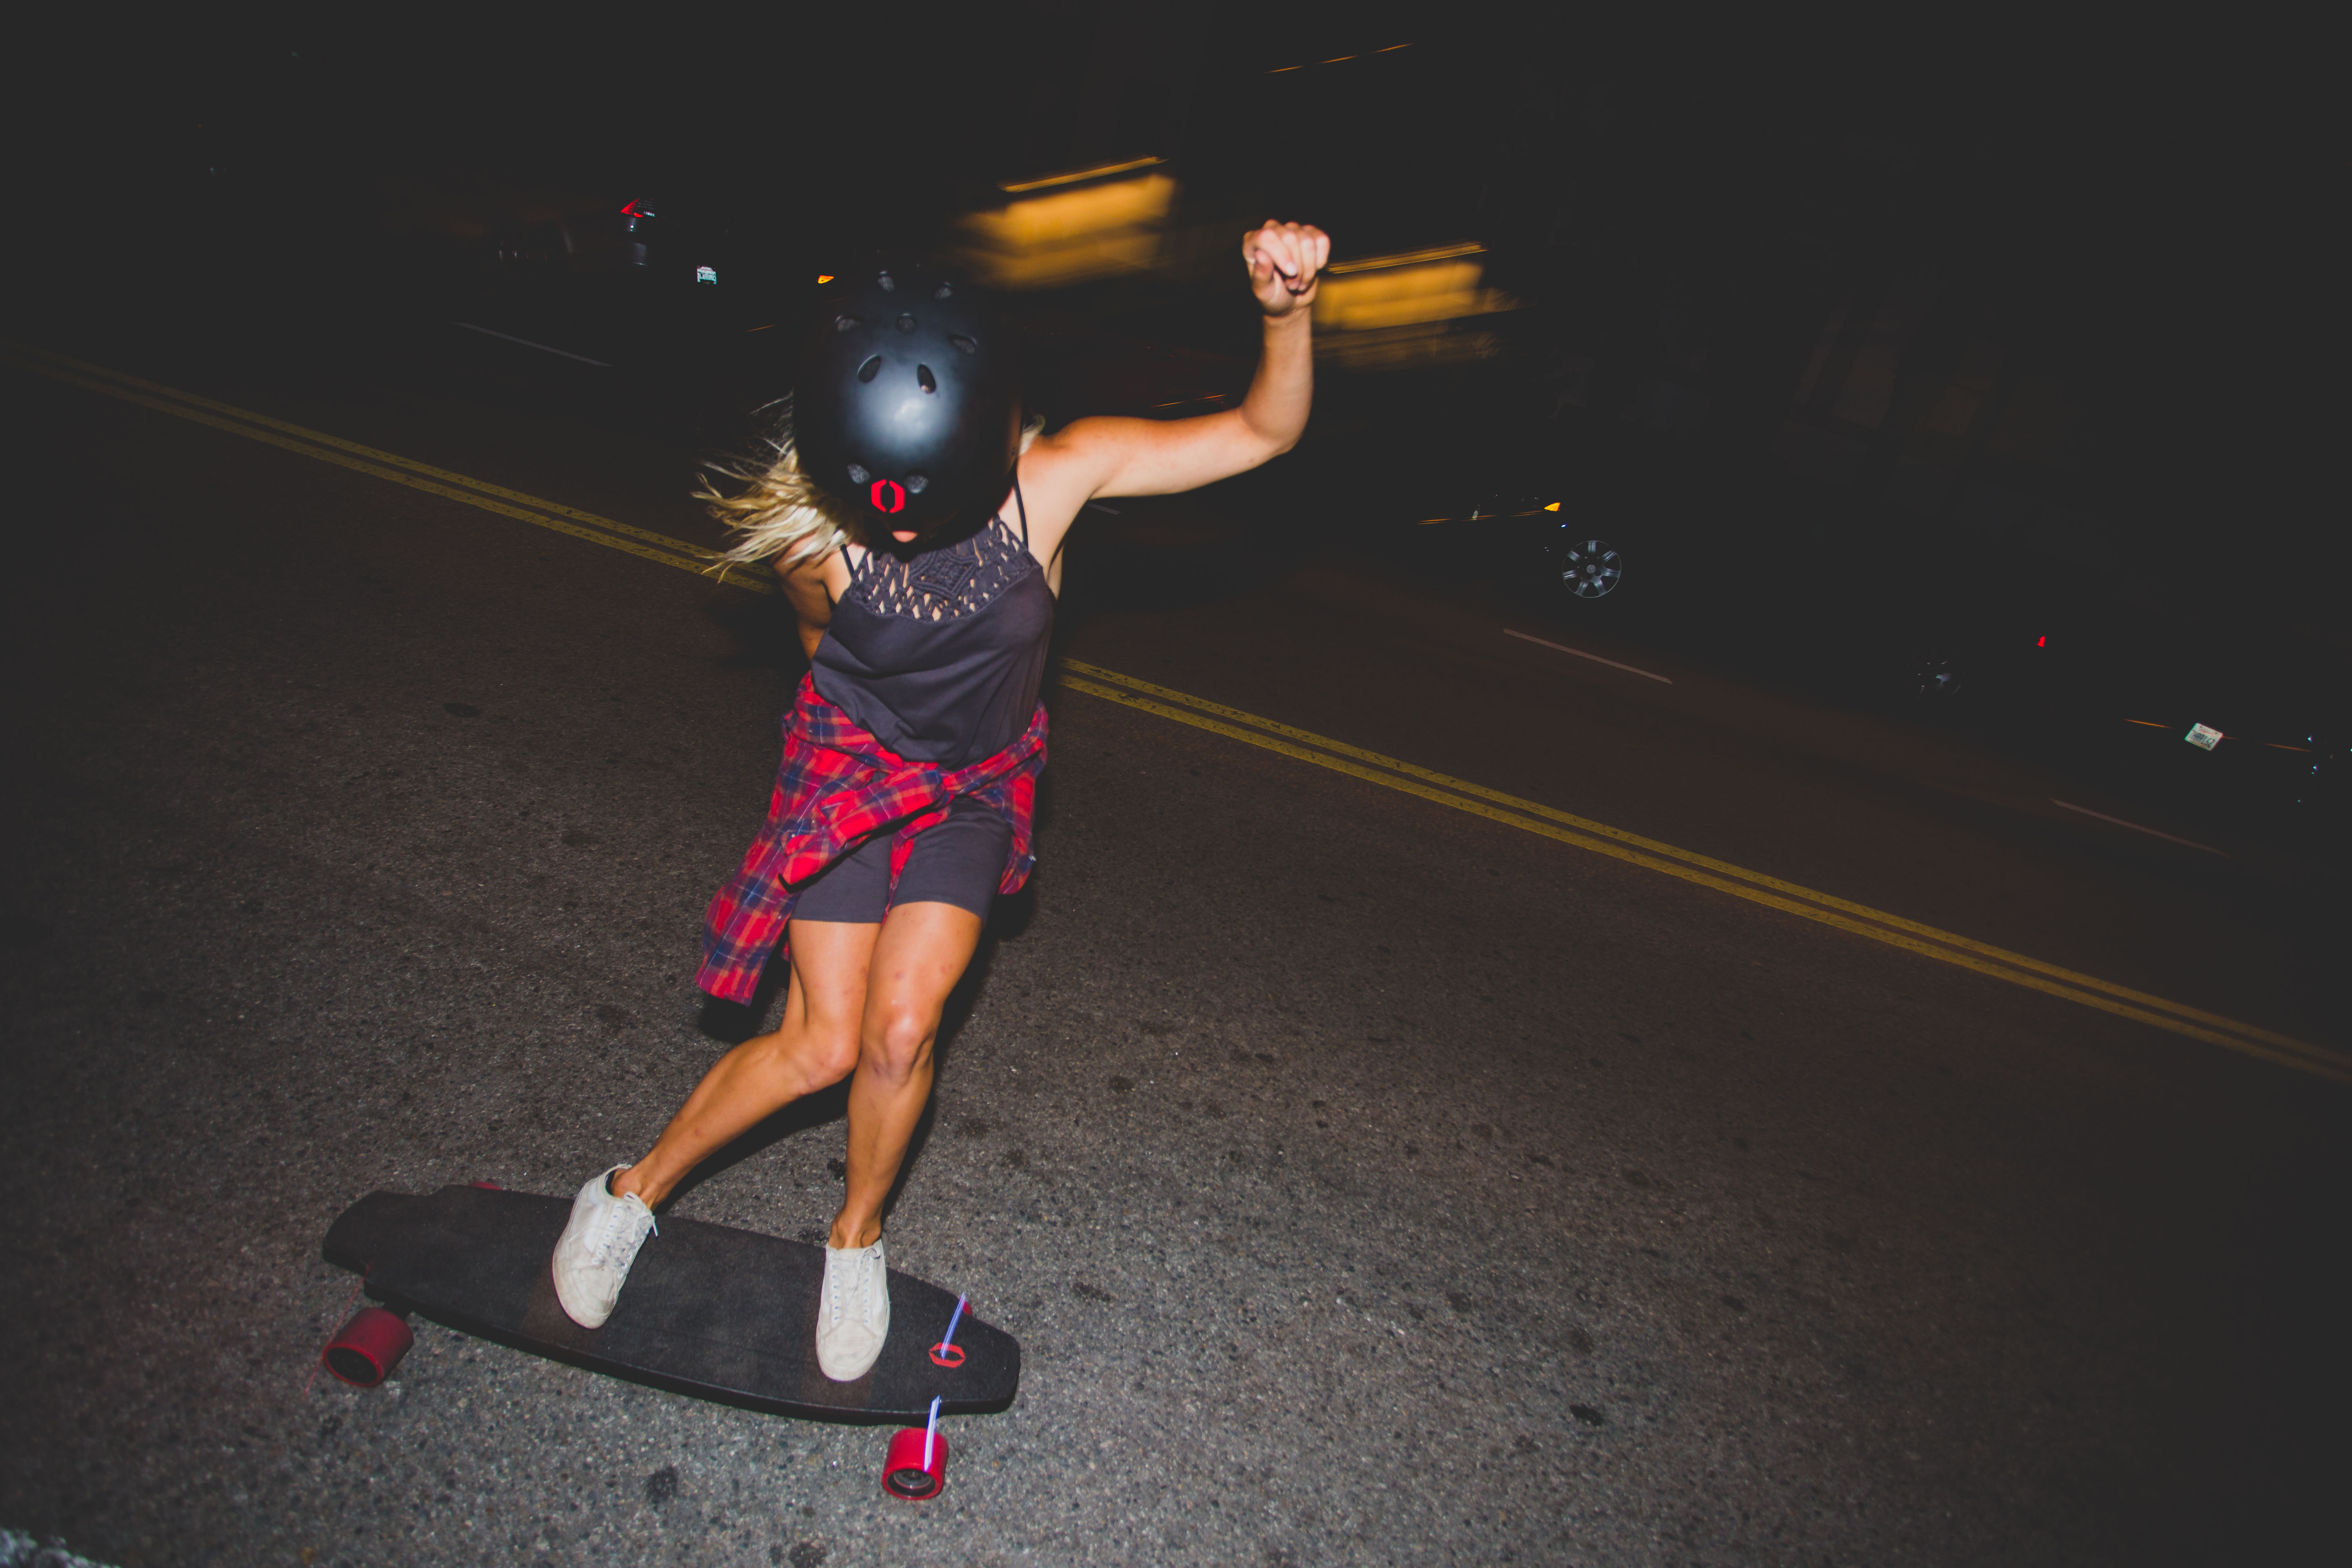 Inboard M1 Electric Skateboard Review - Electric Surf Sports 507eeb71054